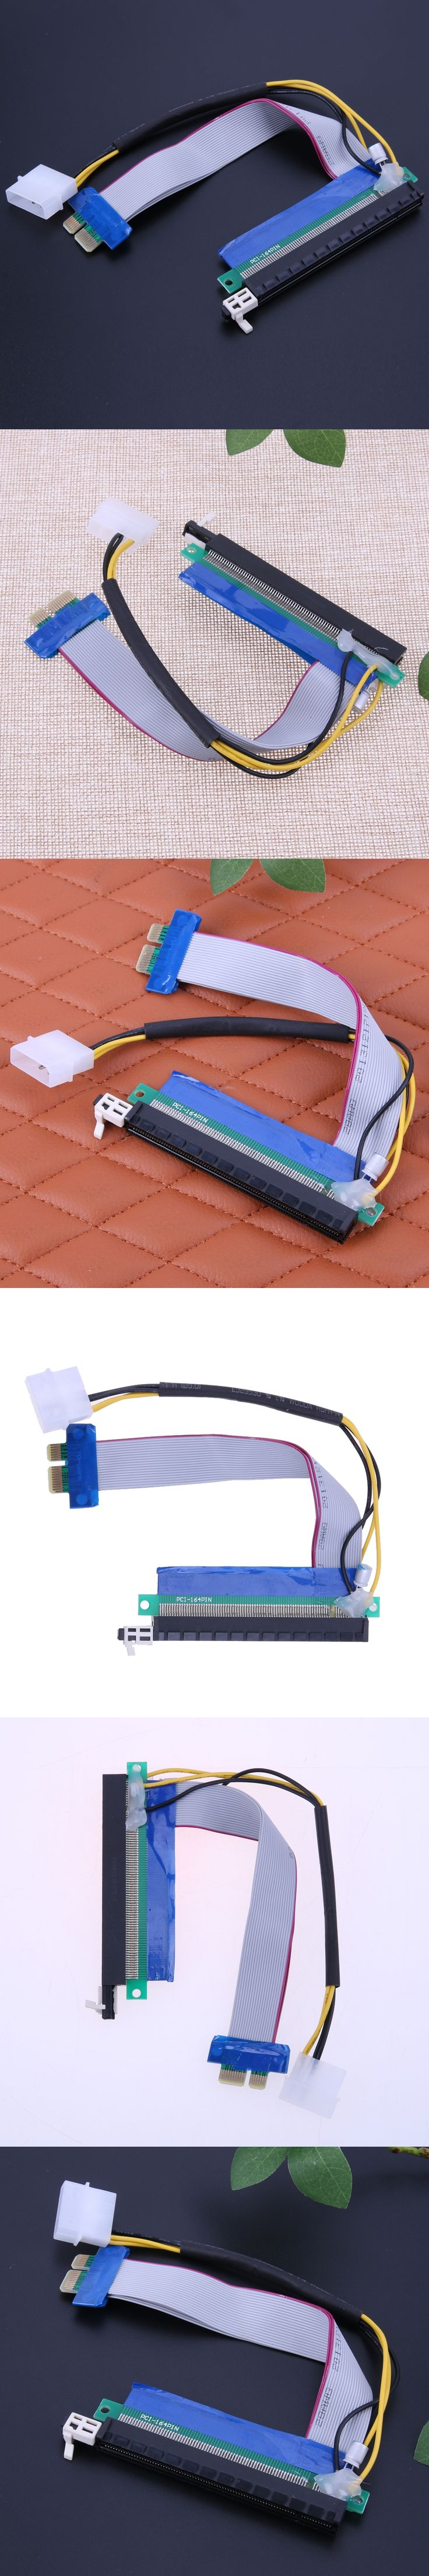 Upgraded extender cable PCI-E 1X 16X Flexible Extension Adapter PCI-E Extender Converter Riser Cable for Bitcoin Miner